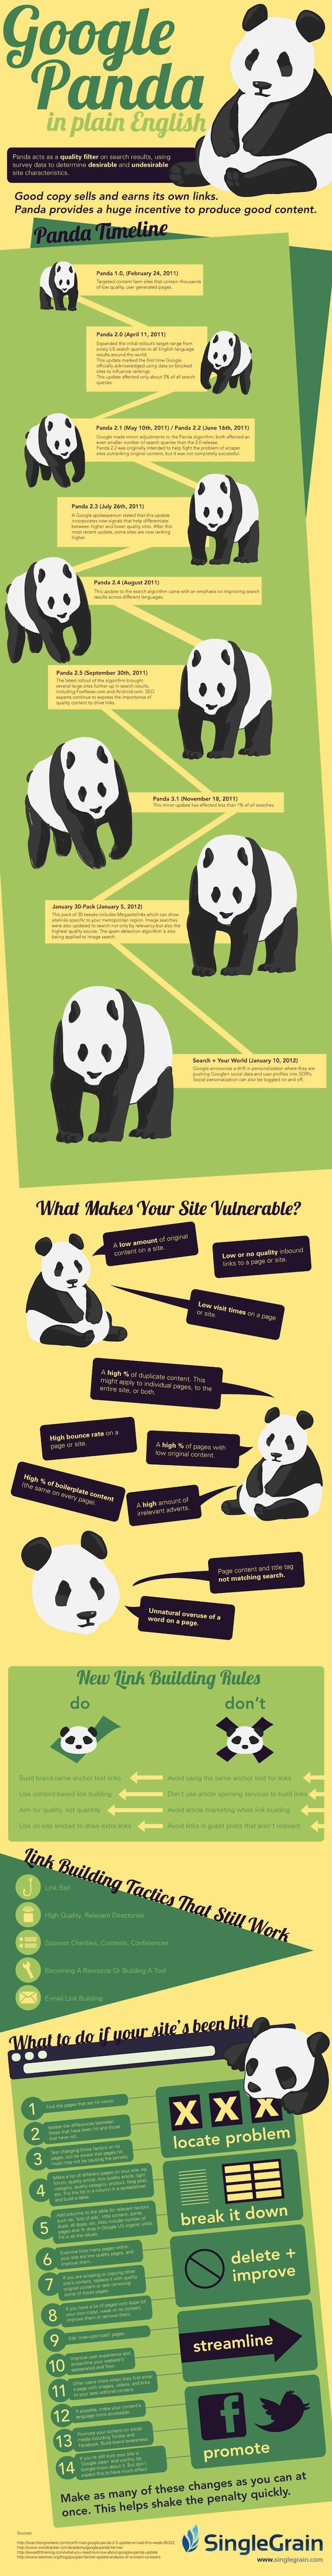 How Google's Panda algorithm changes have changed the world of SEO